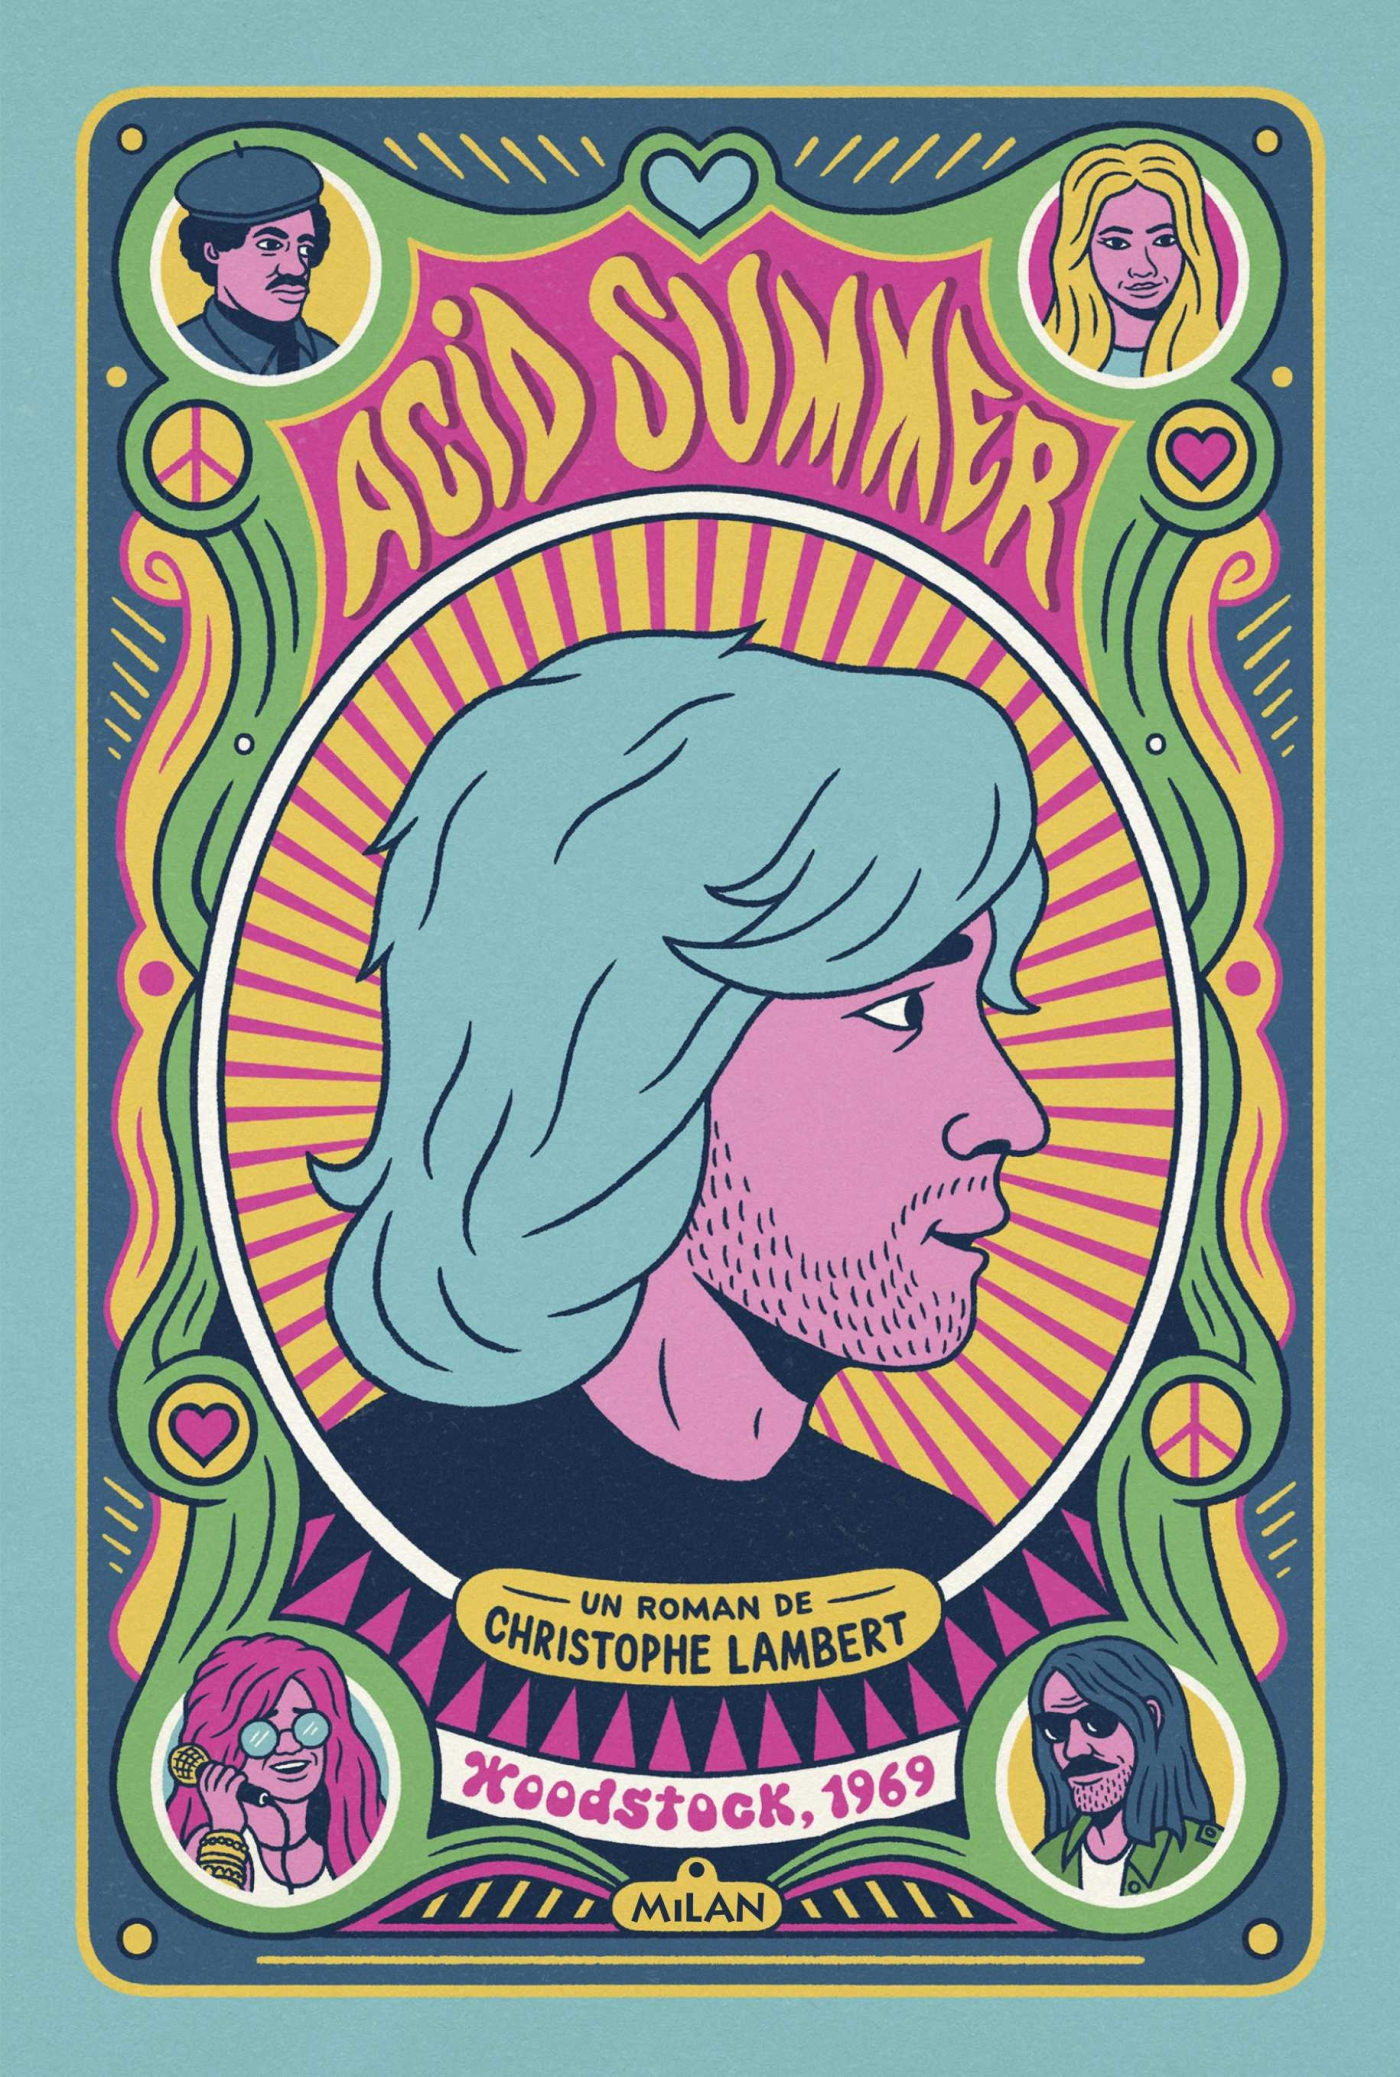 Image de l'article « Acid Summer de Christophe Lambert »